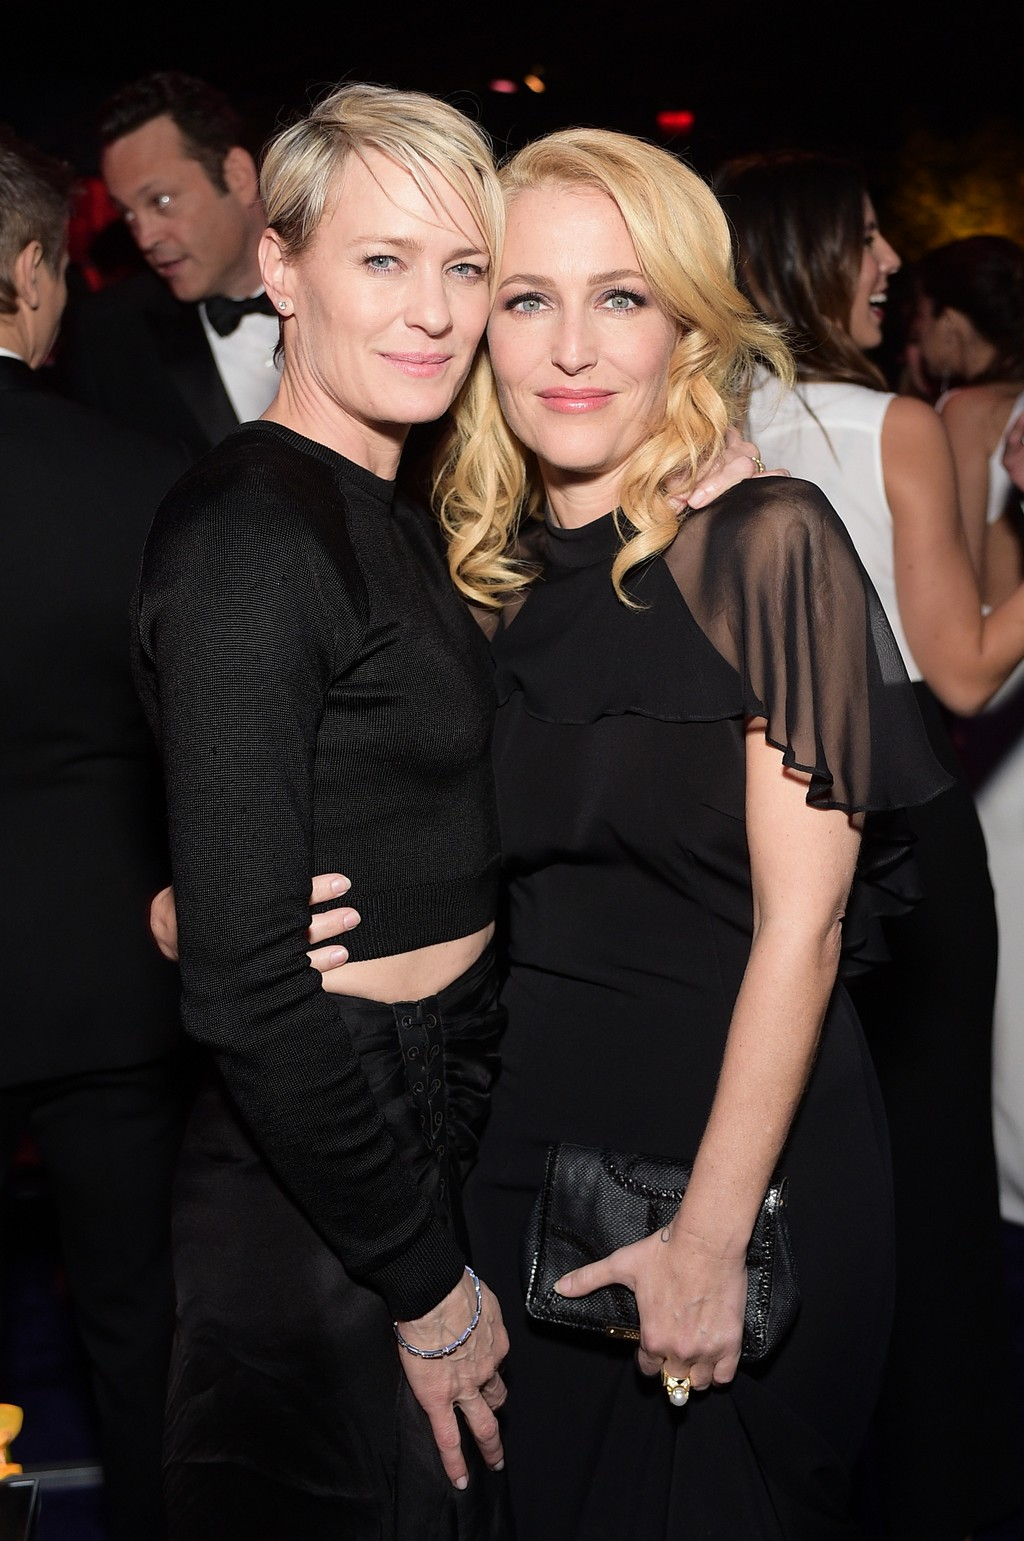 golden globes 2015 robin wright and gillian anderson photo